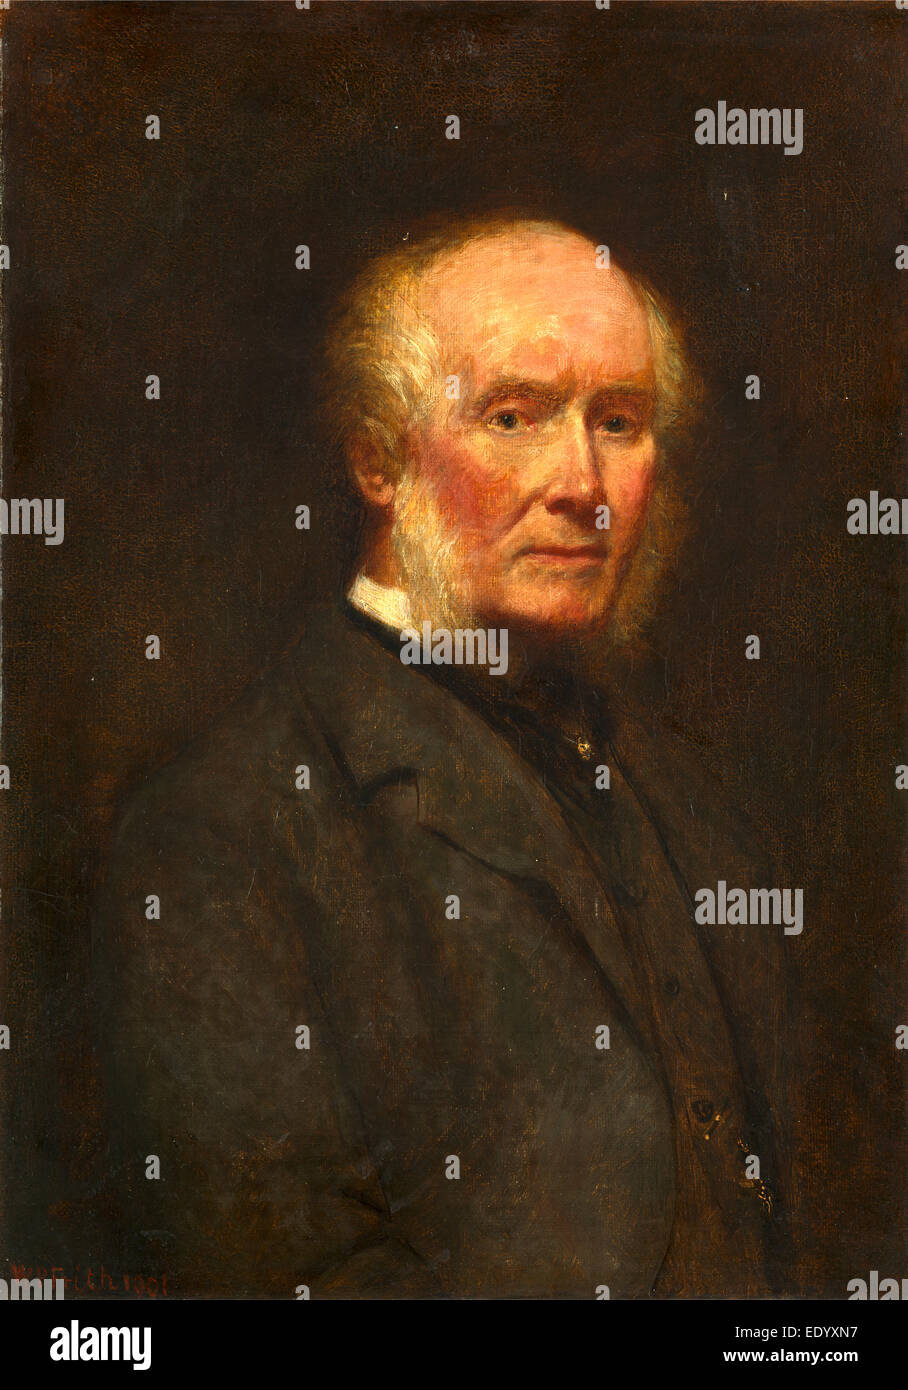 Self-Portrait at the Age of 83 Signed and dated, lower left: 'WP Frith 1901', William Powell Frith, 1819 - Stock Image